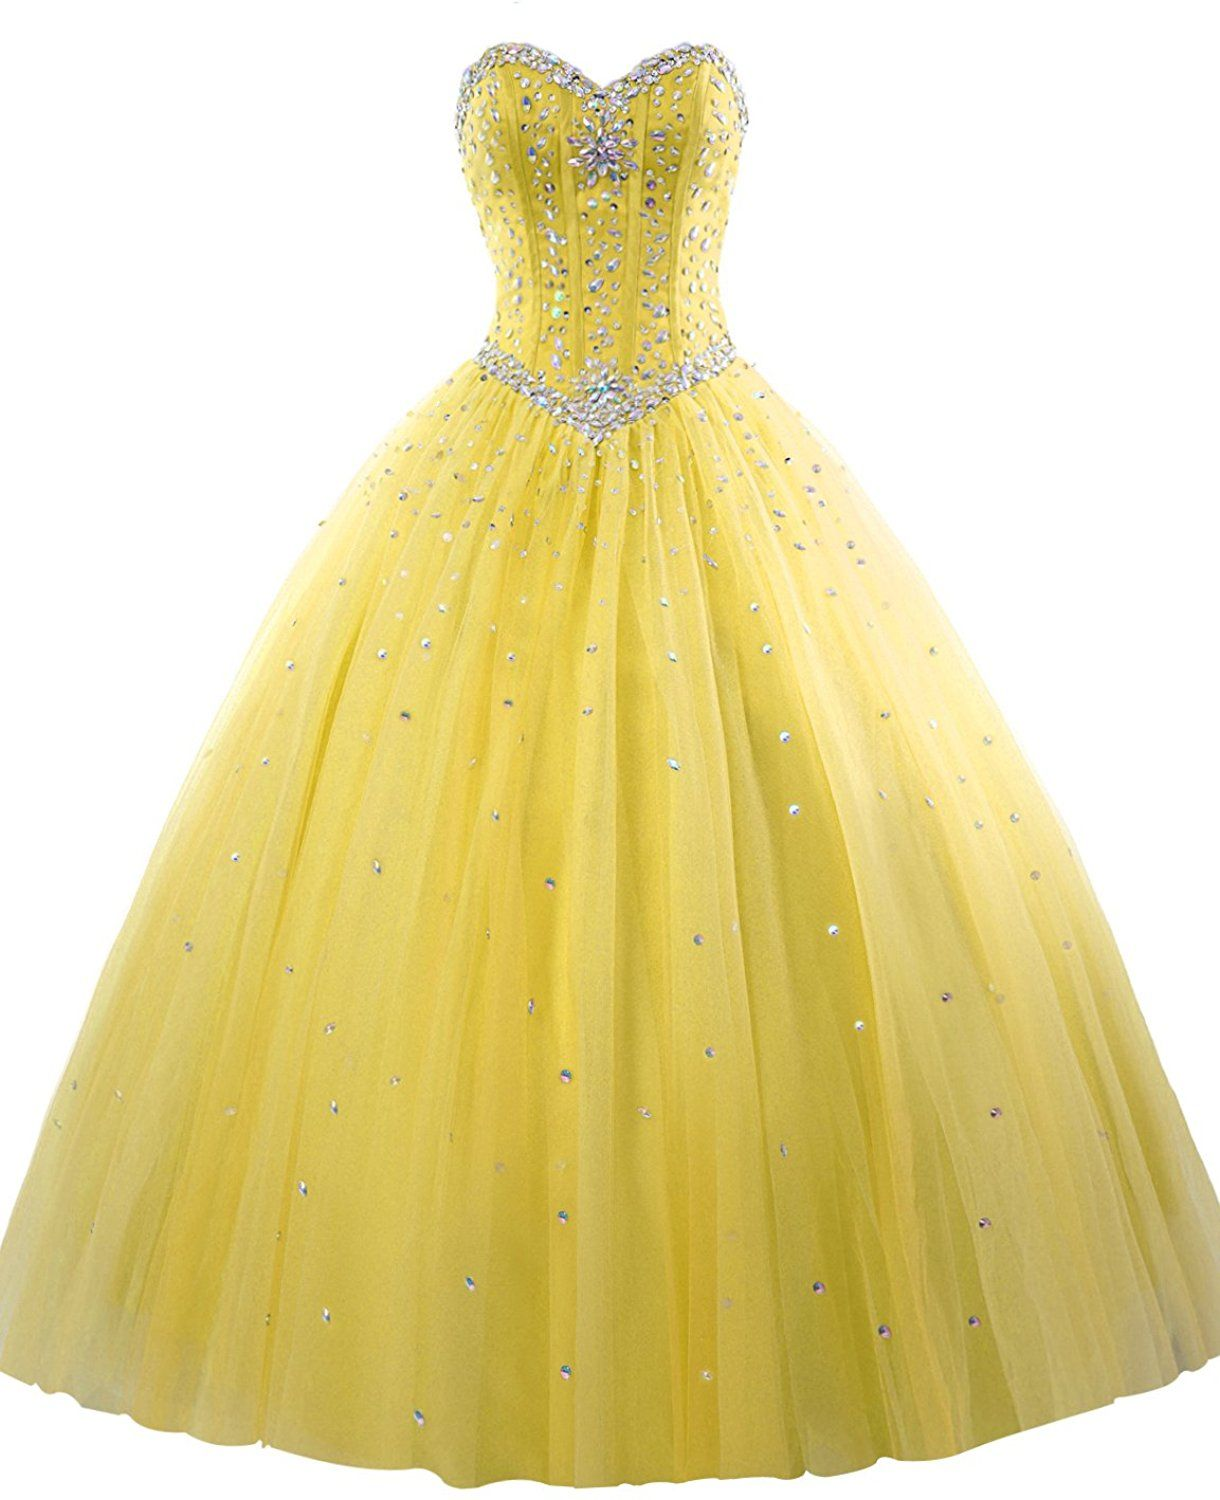 95b9fa982a1 Amazon.com  Erosebridal Long Prom Dress Tulle Sweetheart Beaded Quinceanera  Dress US 6 Yellow  Clothing